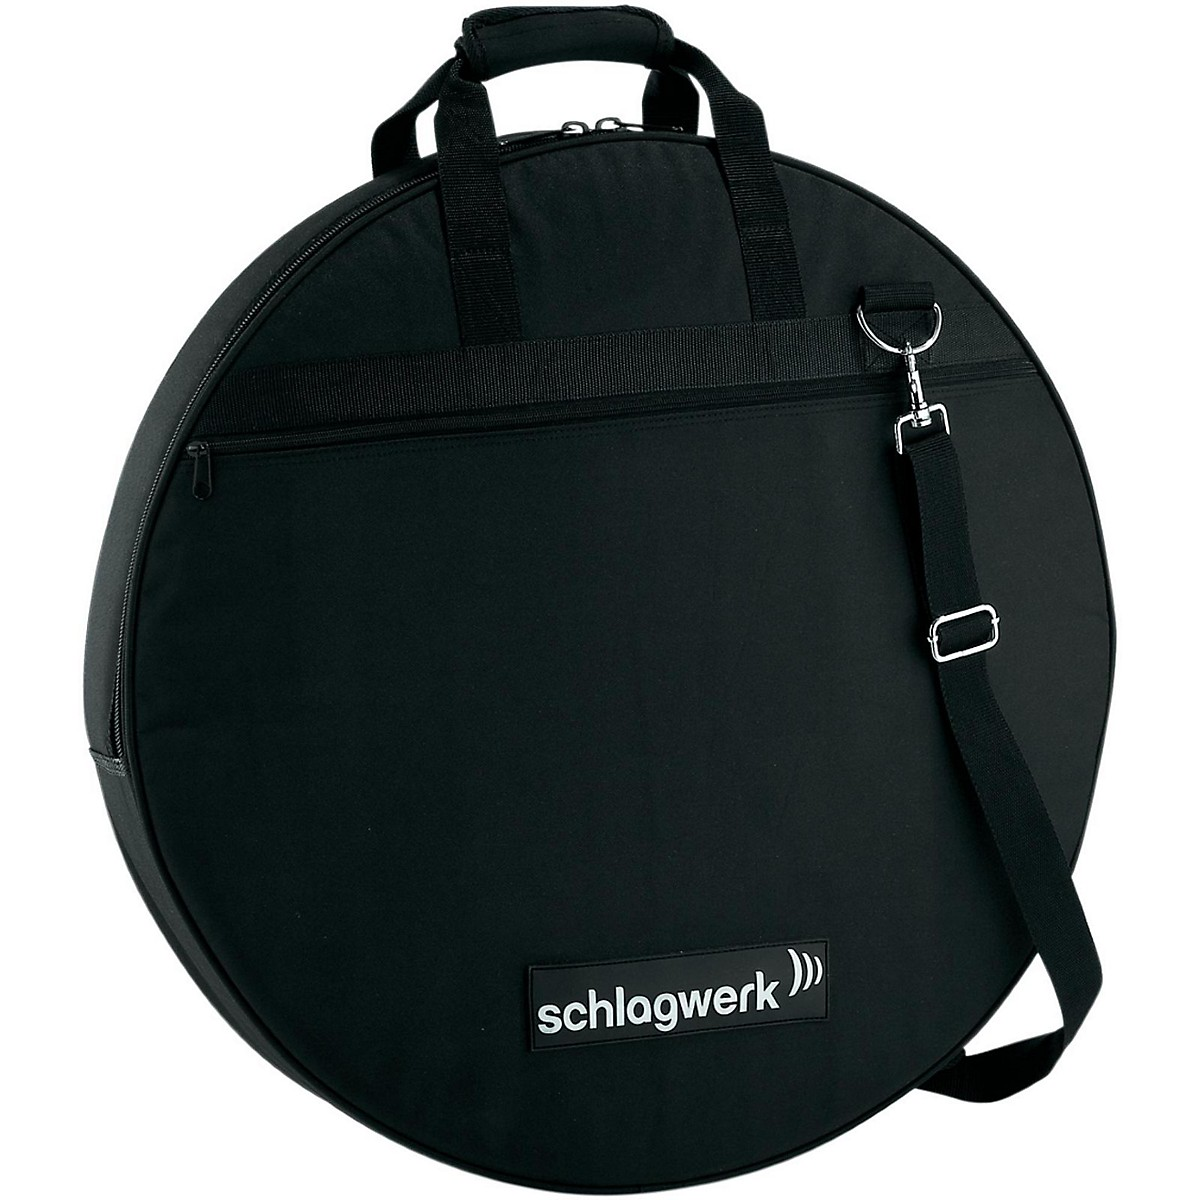 Schlagwerk Frame Drum Bag